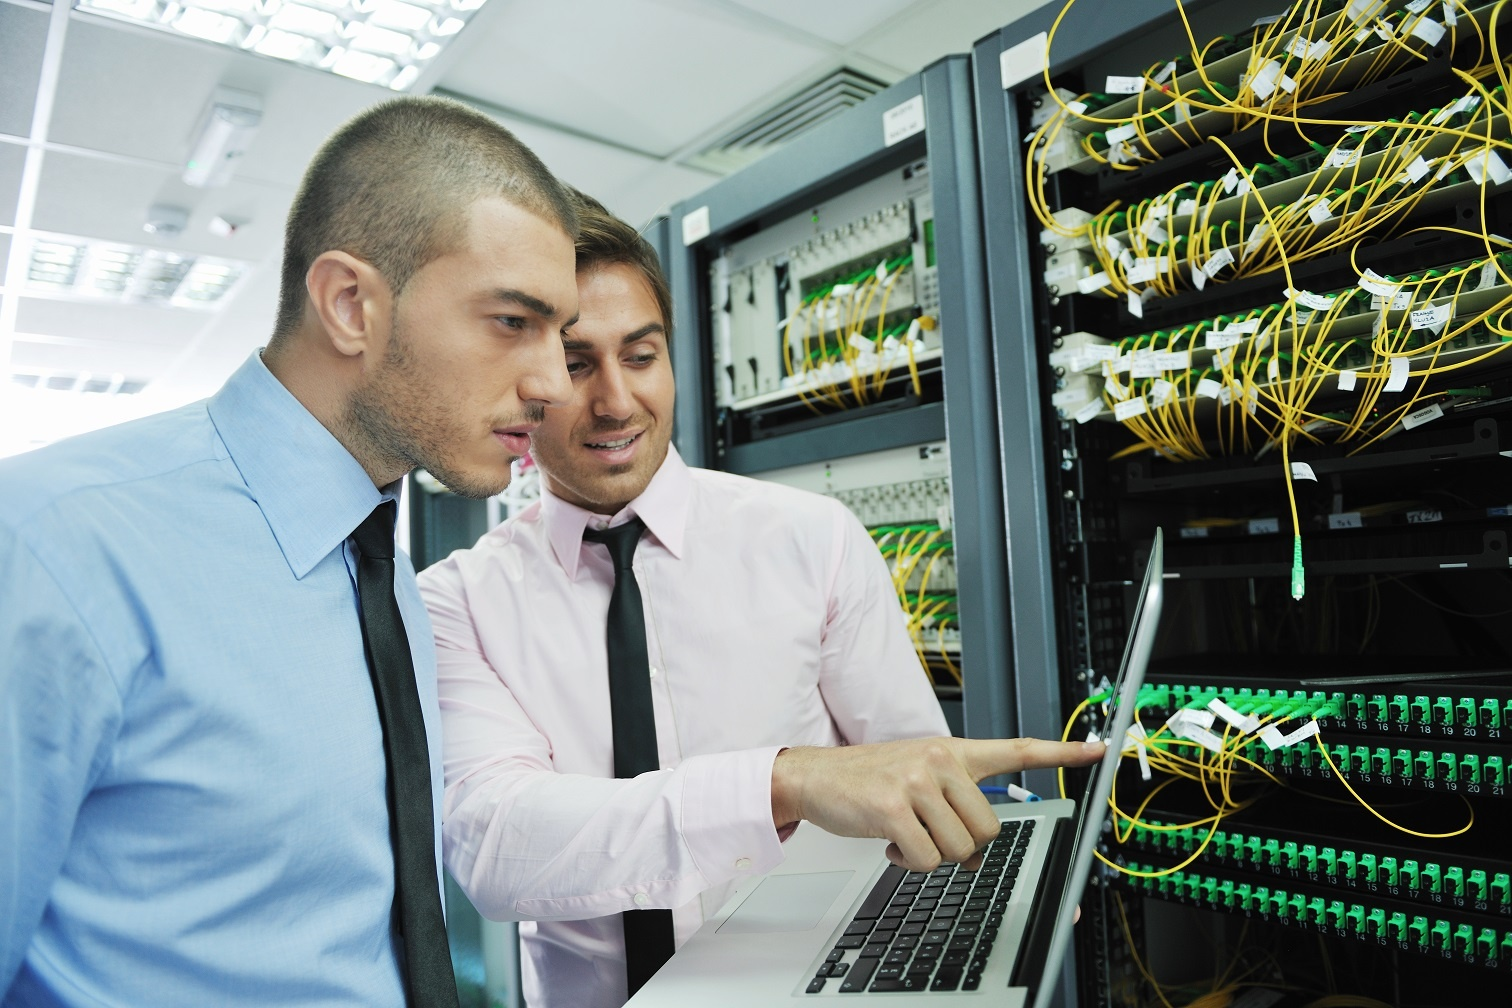 IT engineers in a server room